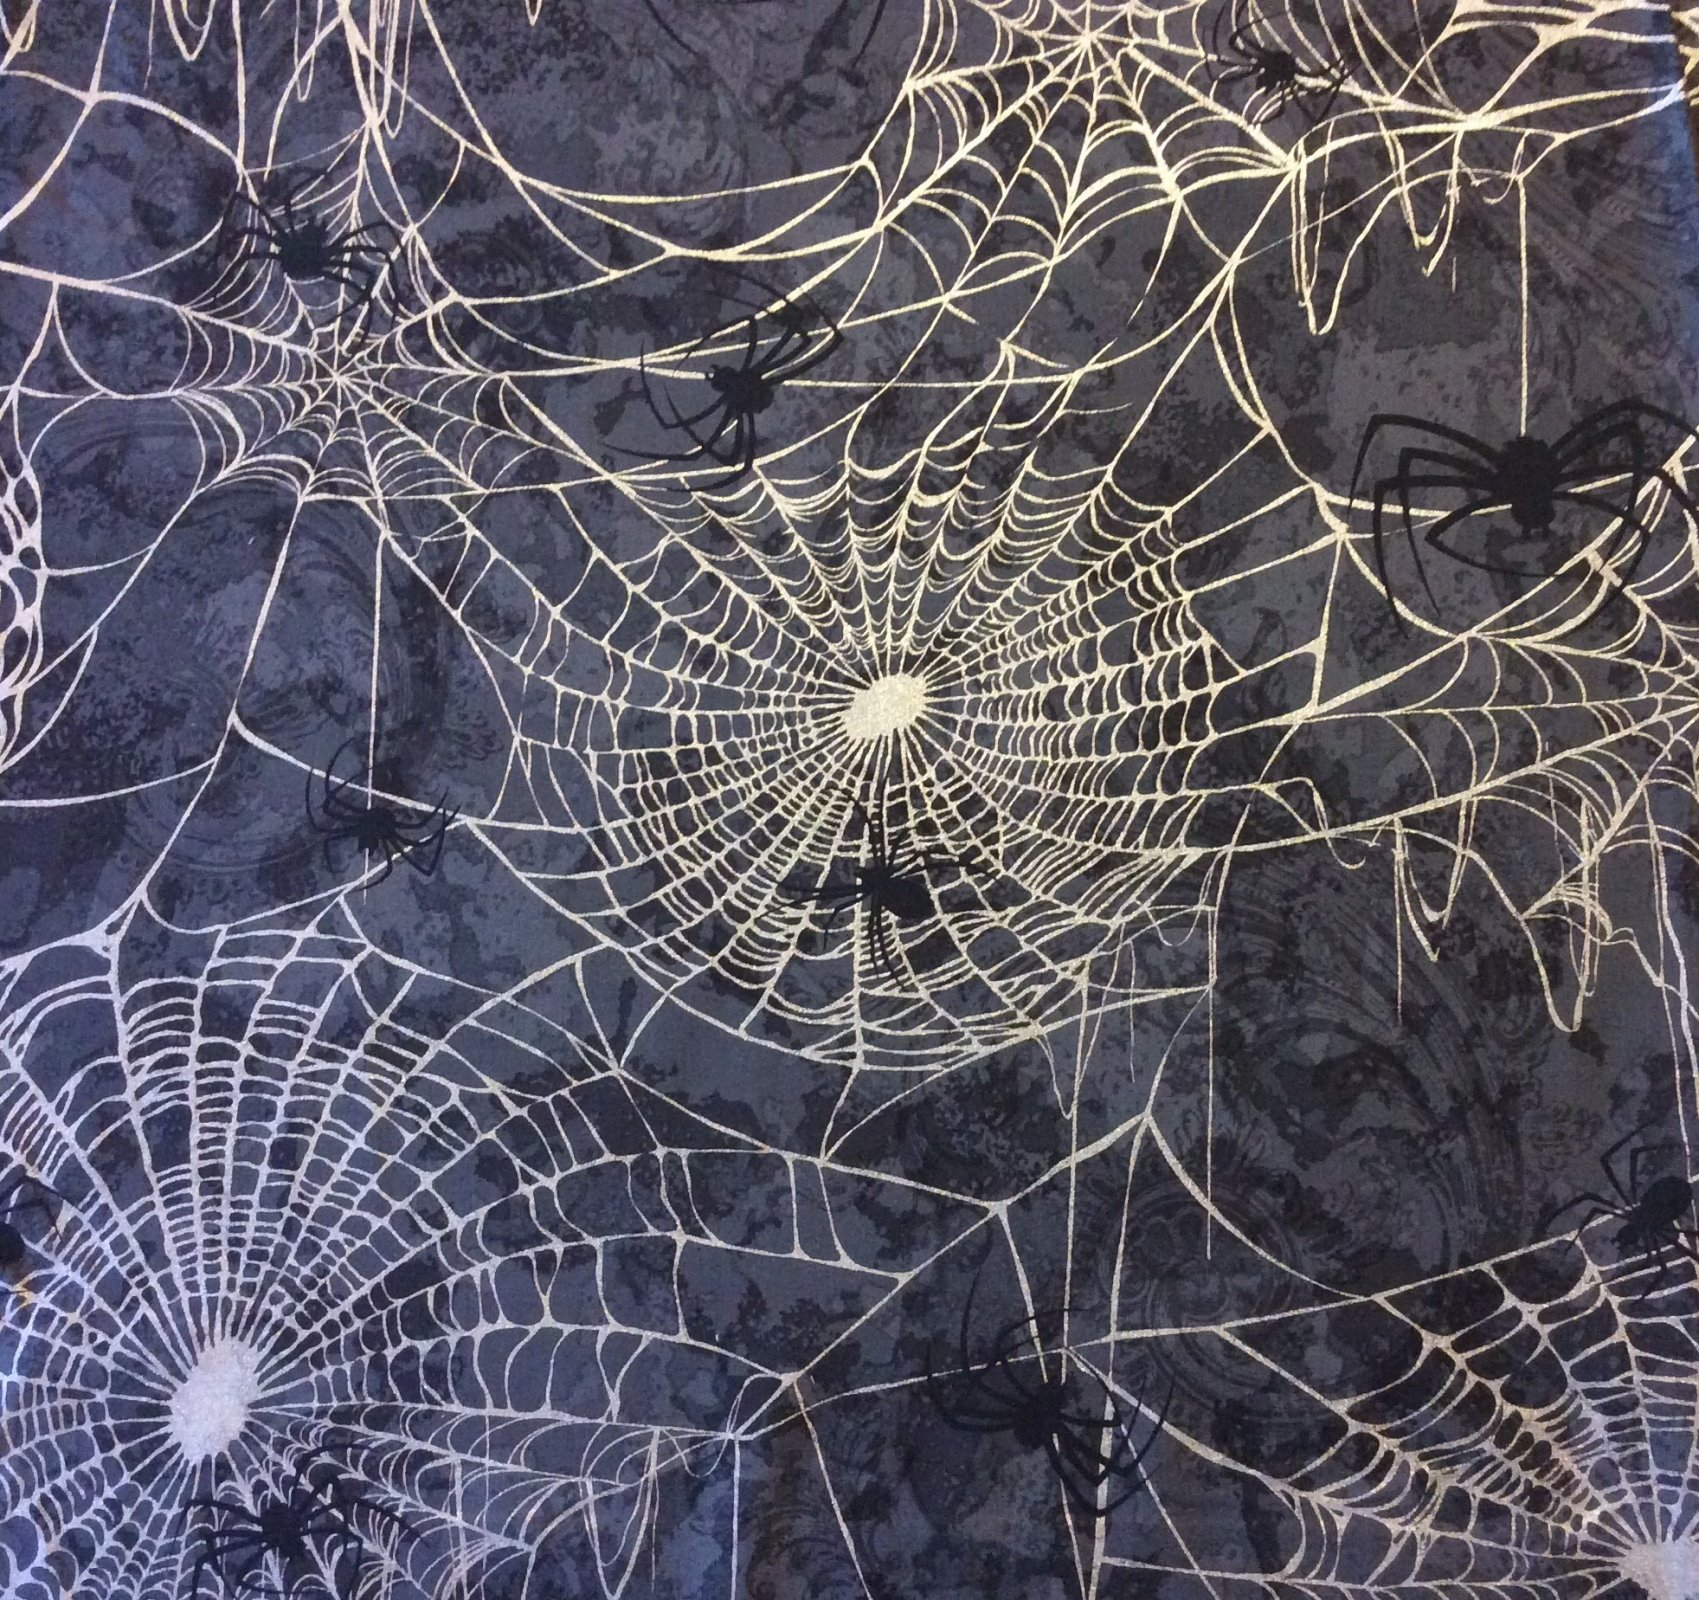 Spider Web Scary Halloween Spooky Black Widow Gloomy Bugs Quilting Cotton Fabric BE10